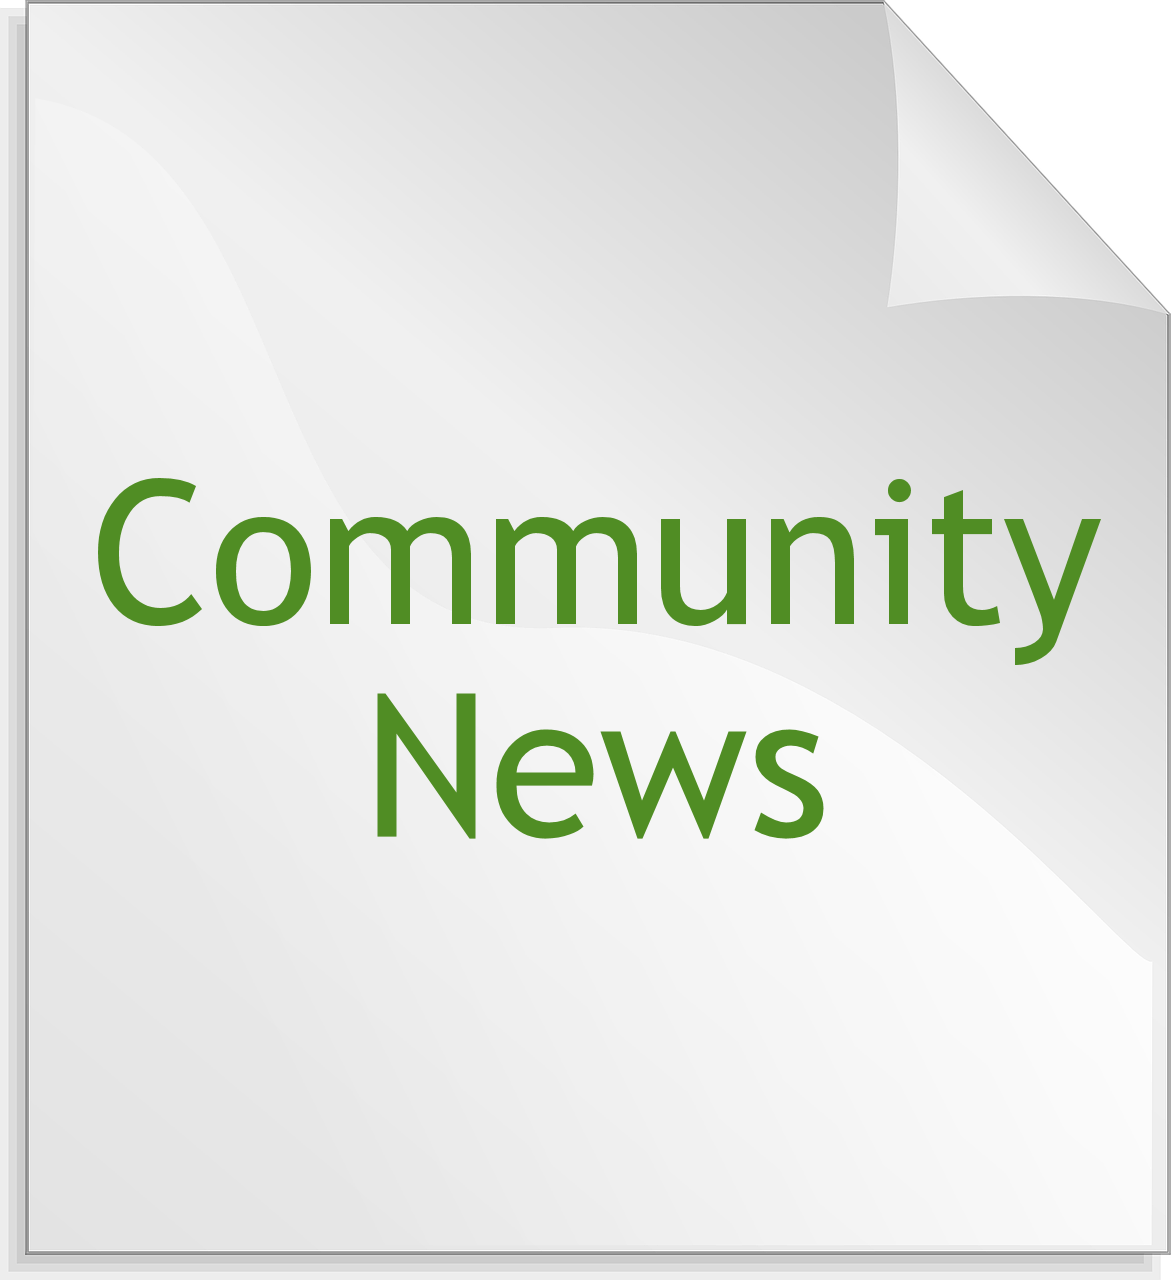 bulletin-community-news.png - News Bulletin PNG